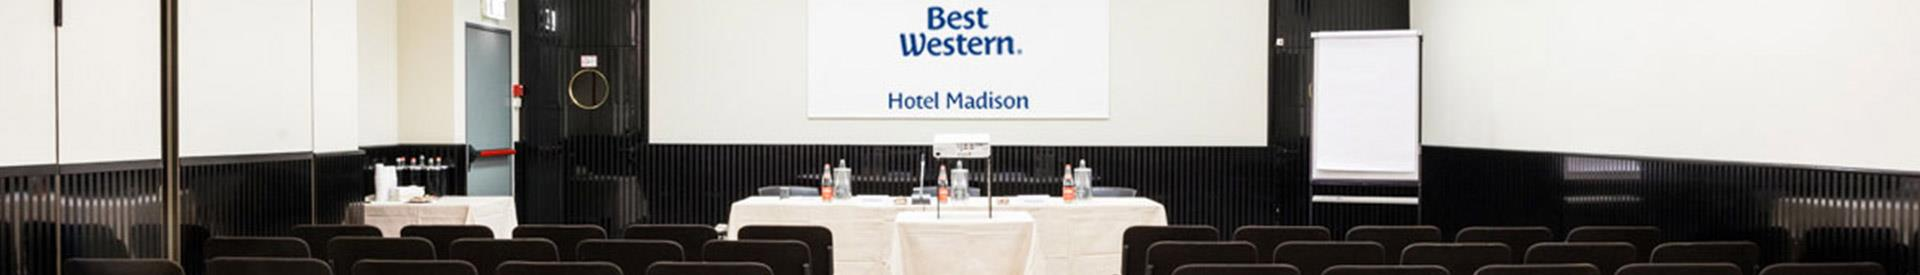 Looking for a hotel for your stay in Milano (MI)? Book/reserve at the Best Western Hotel Madison